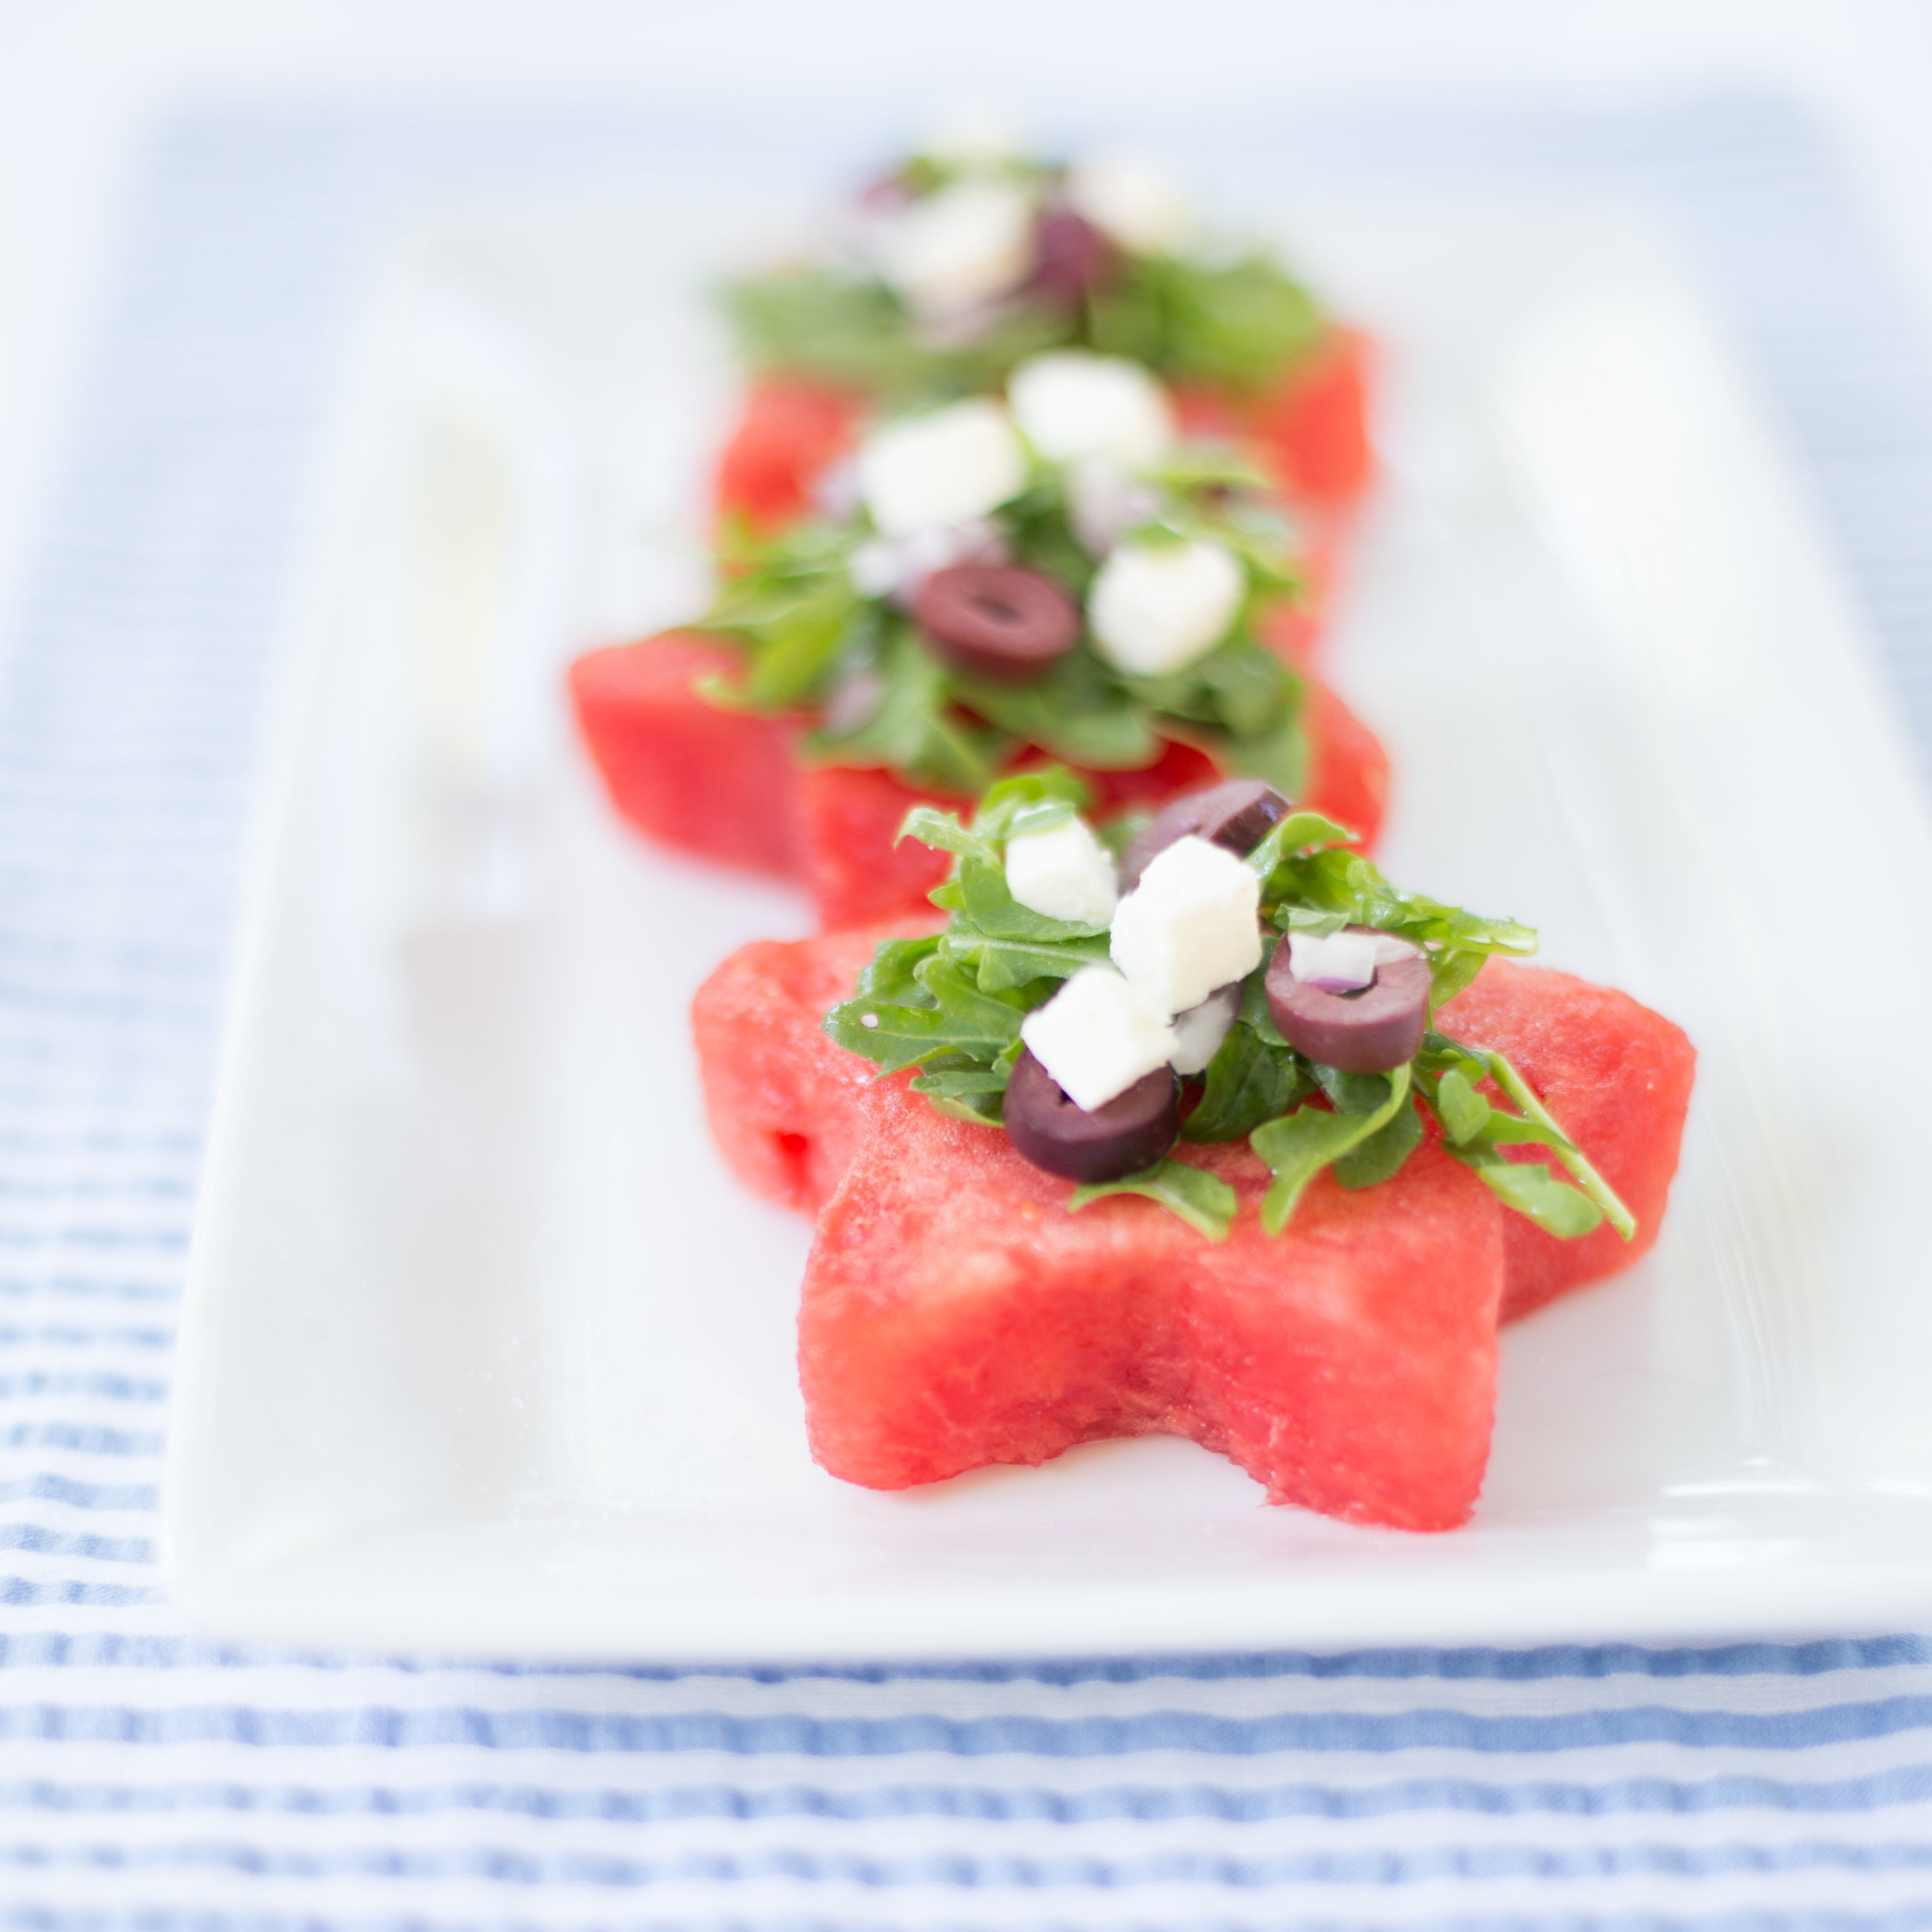 CKT Watermelon Salad